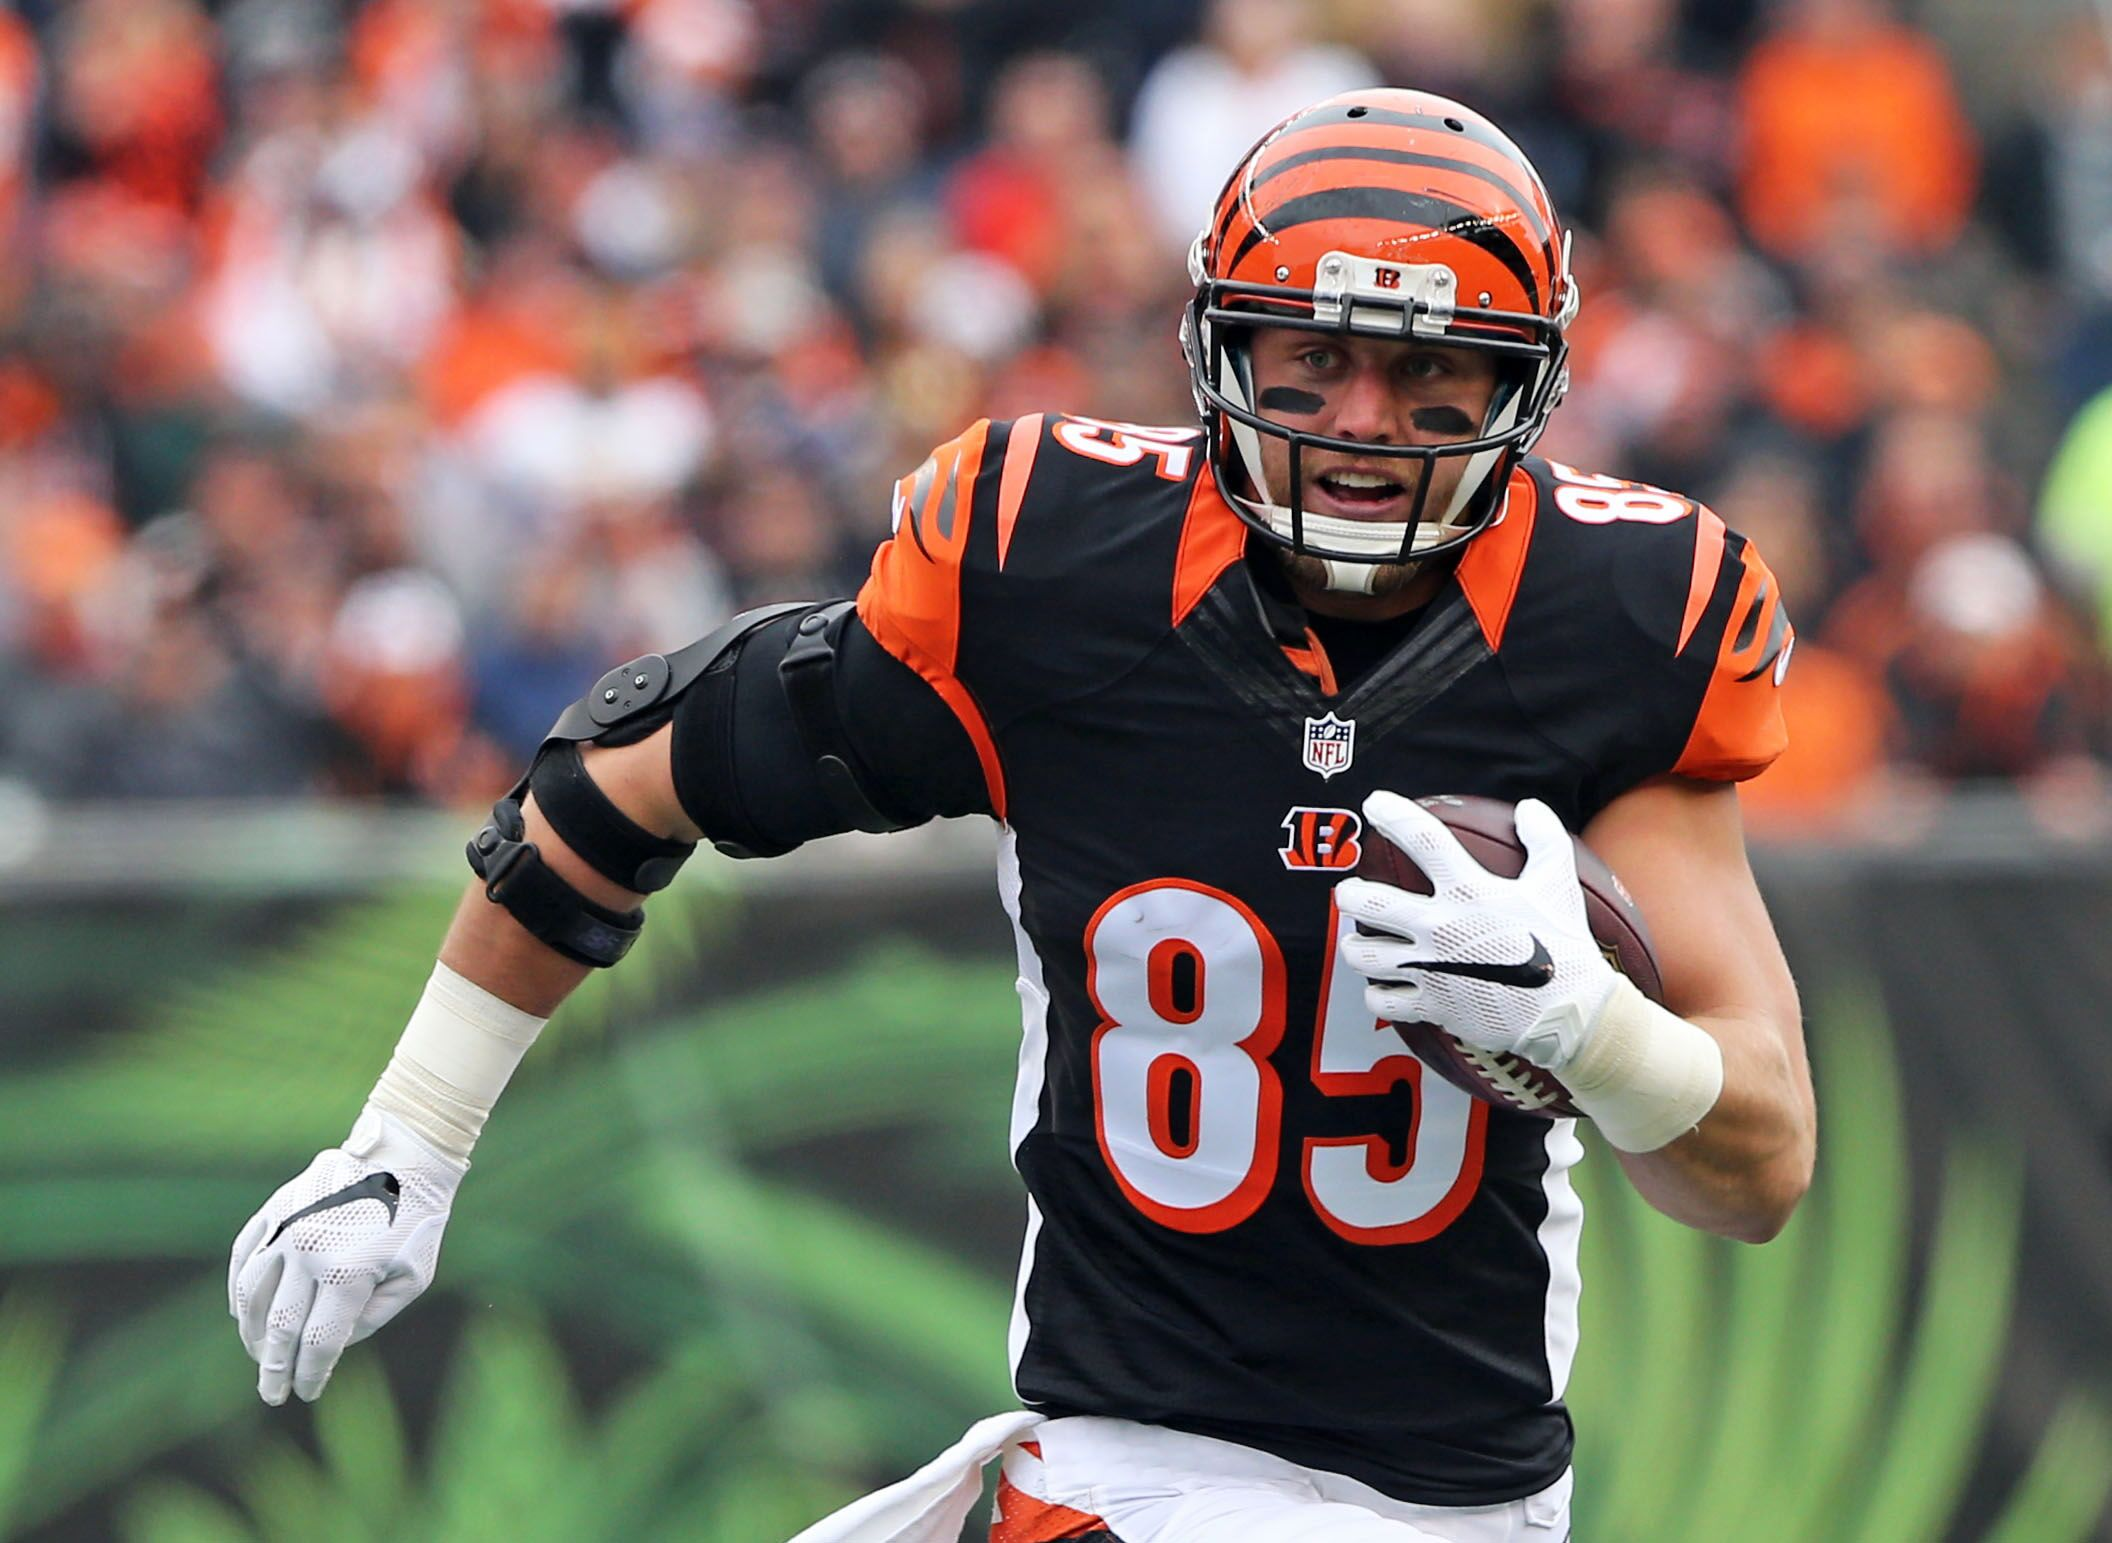 When Will Bengals Tyler Eifert Be Ready For Action